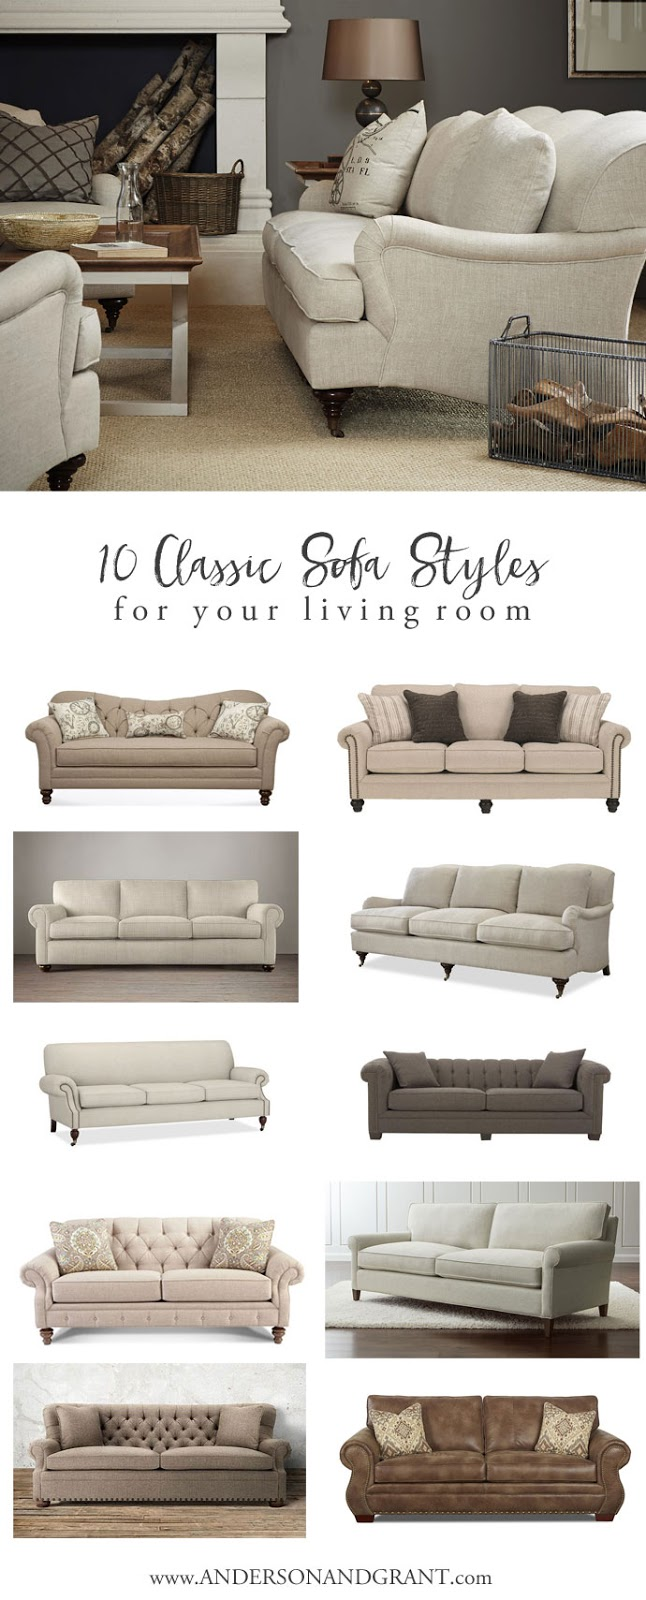 10 Classic Sofa Styles for Your Living Room | anderson + grant